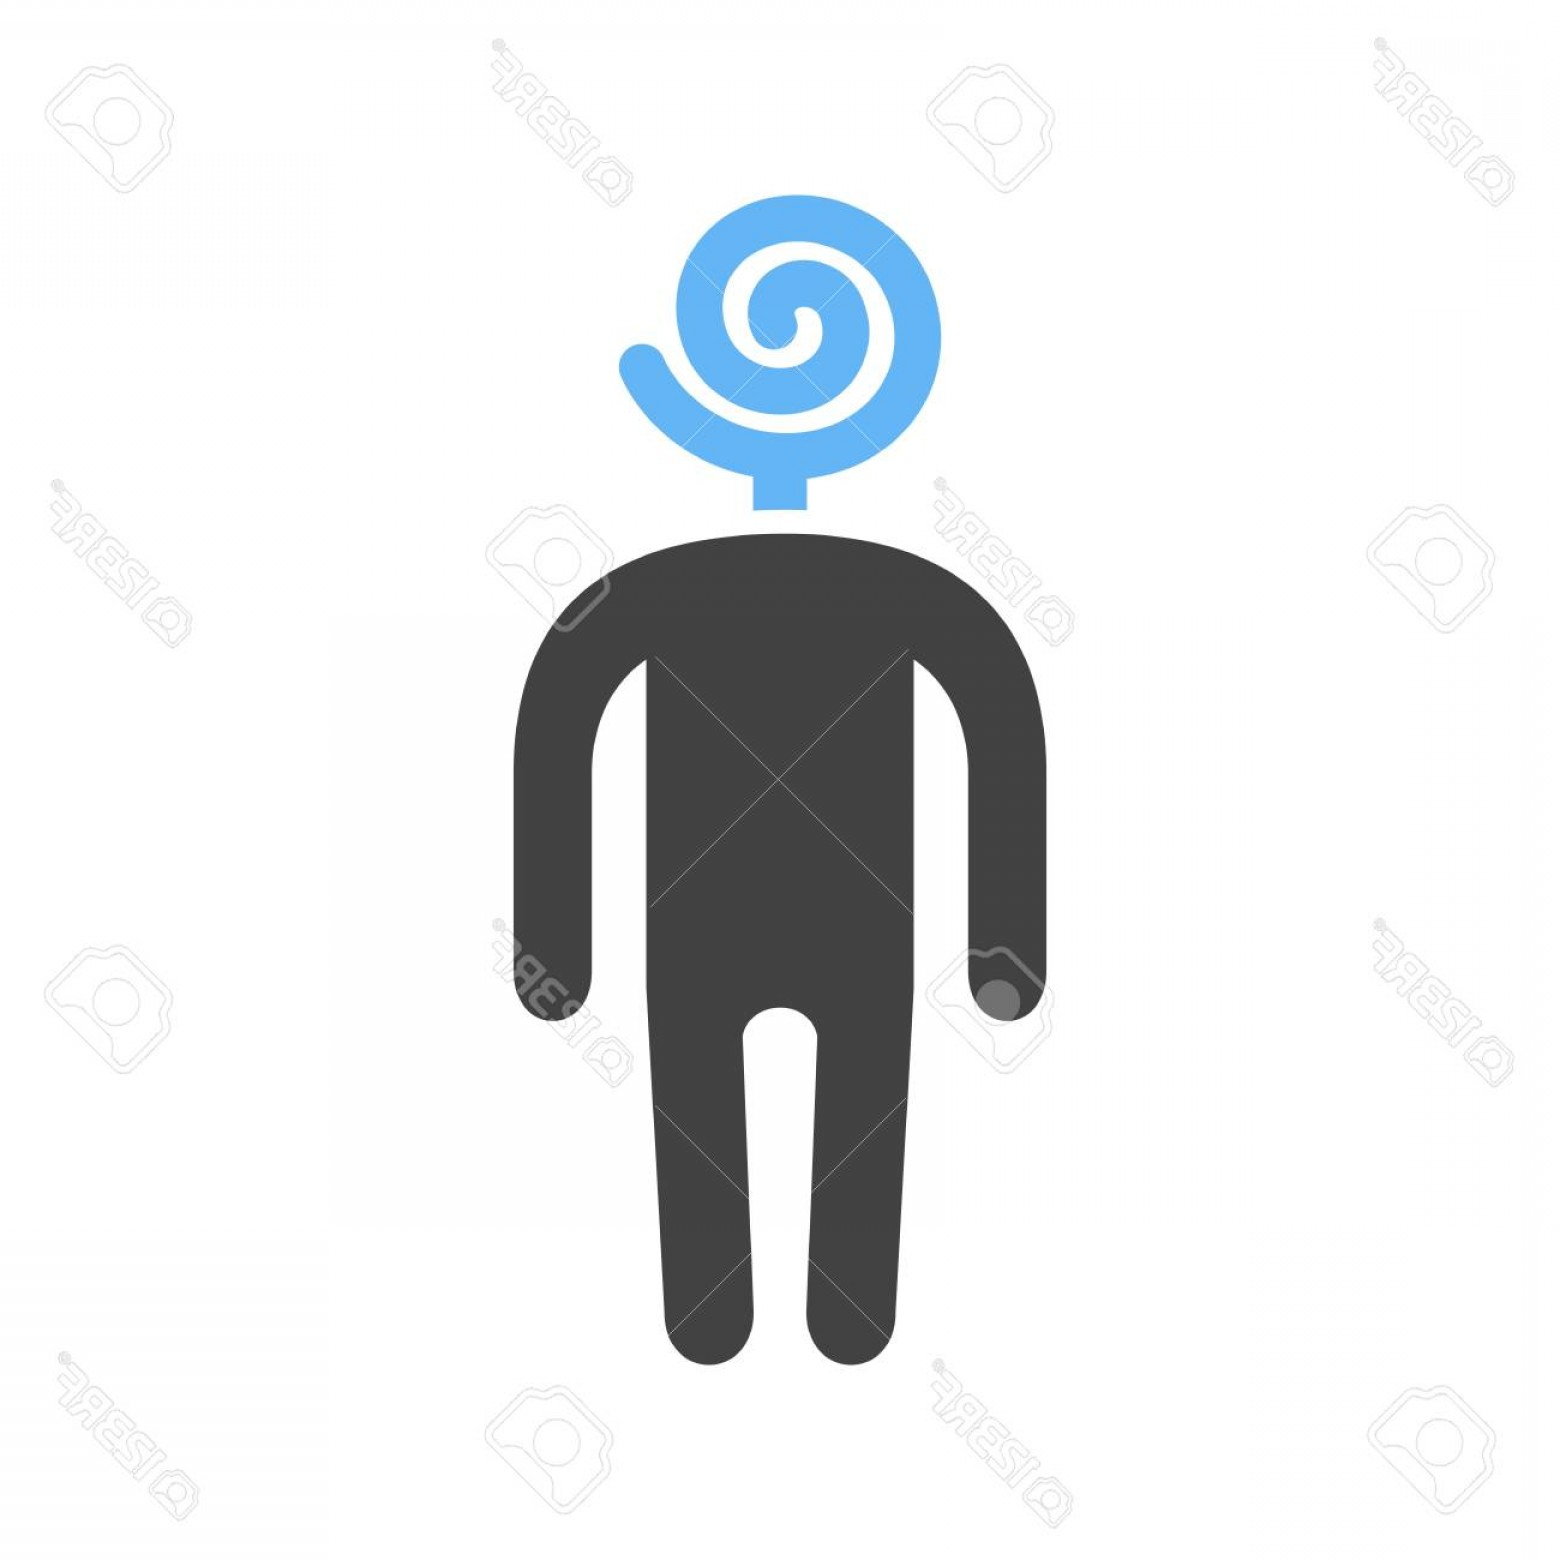 Lollipop Vector Silhouette: Photostock Vector Man Silhouette With A Lollipop For A Head Vector Illustration Isolated On White Background